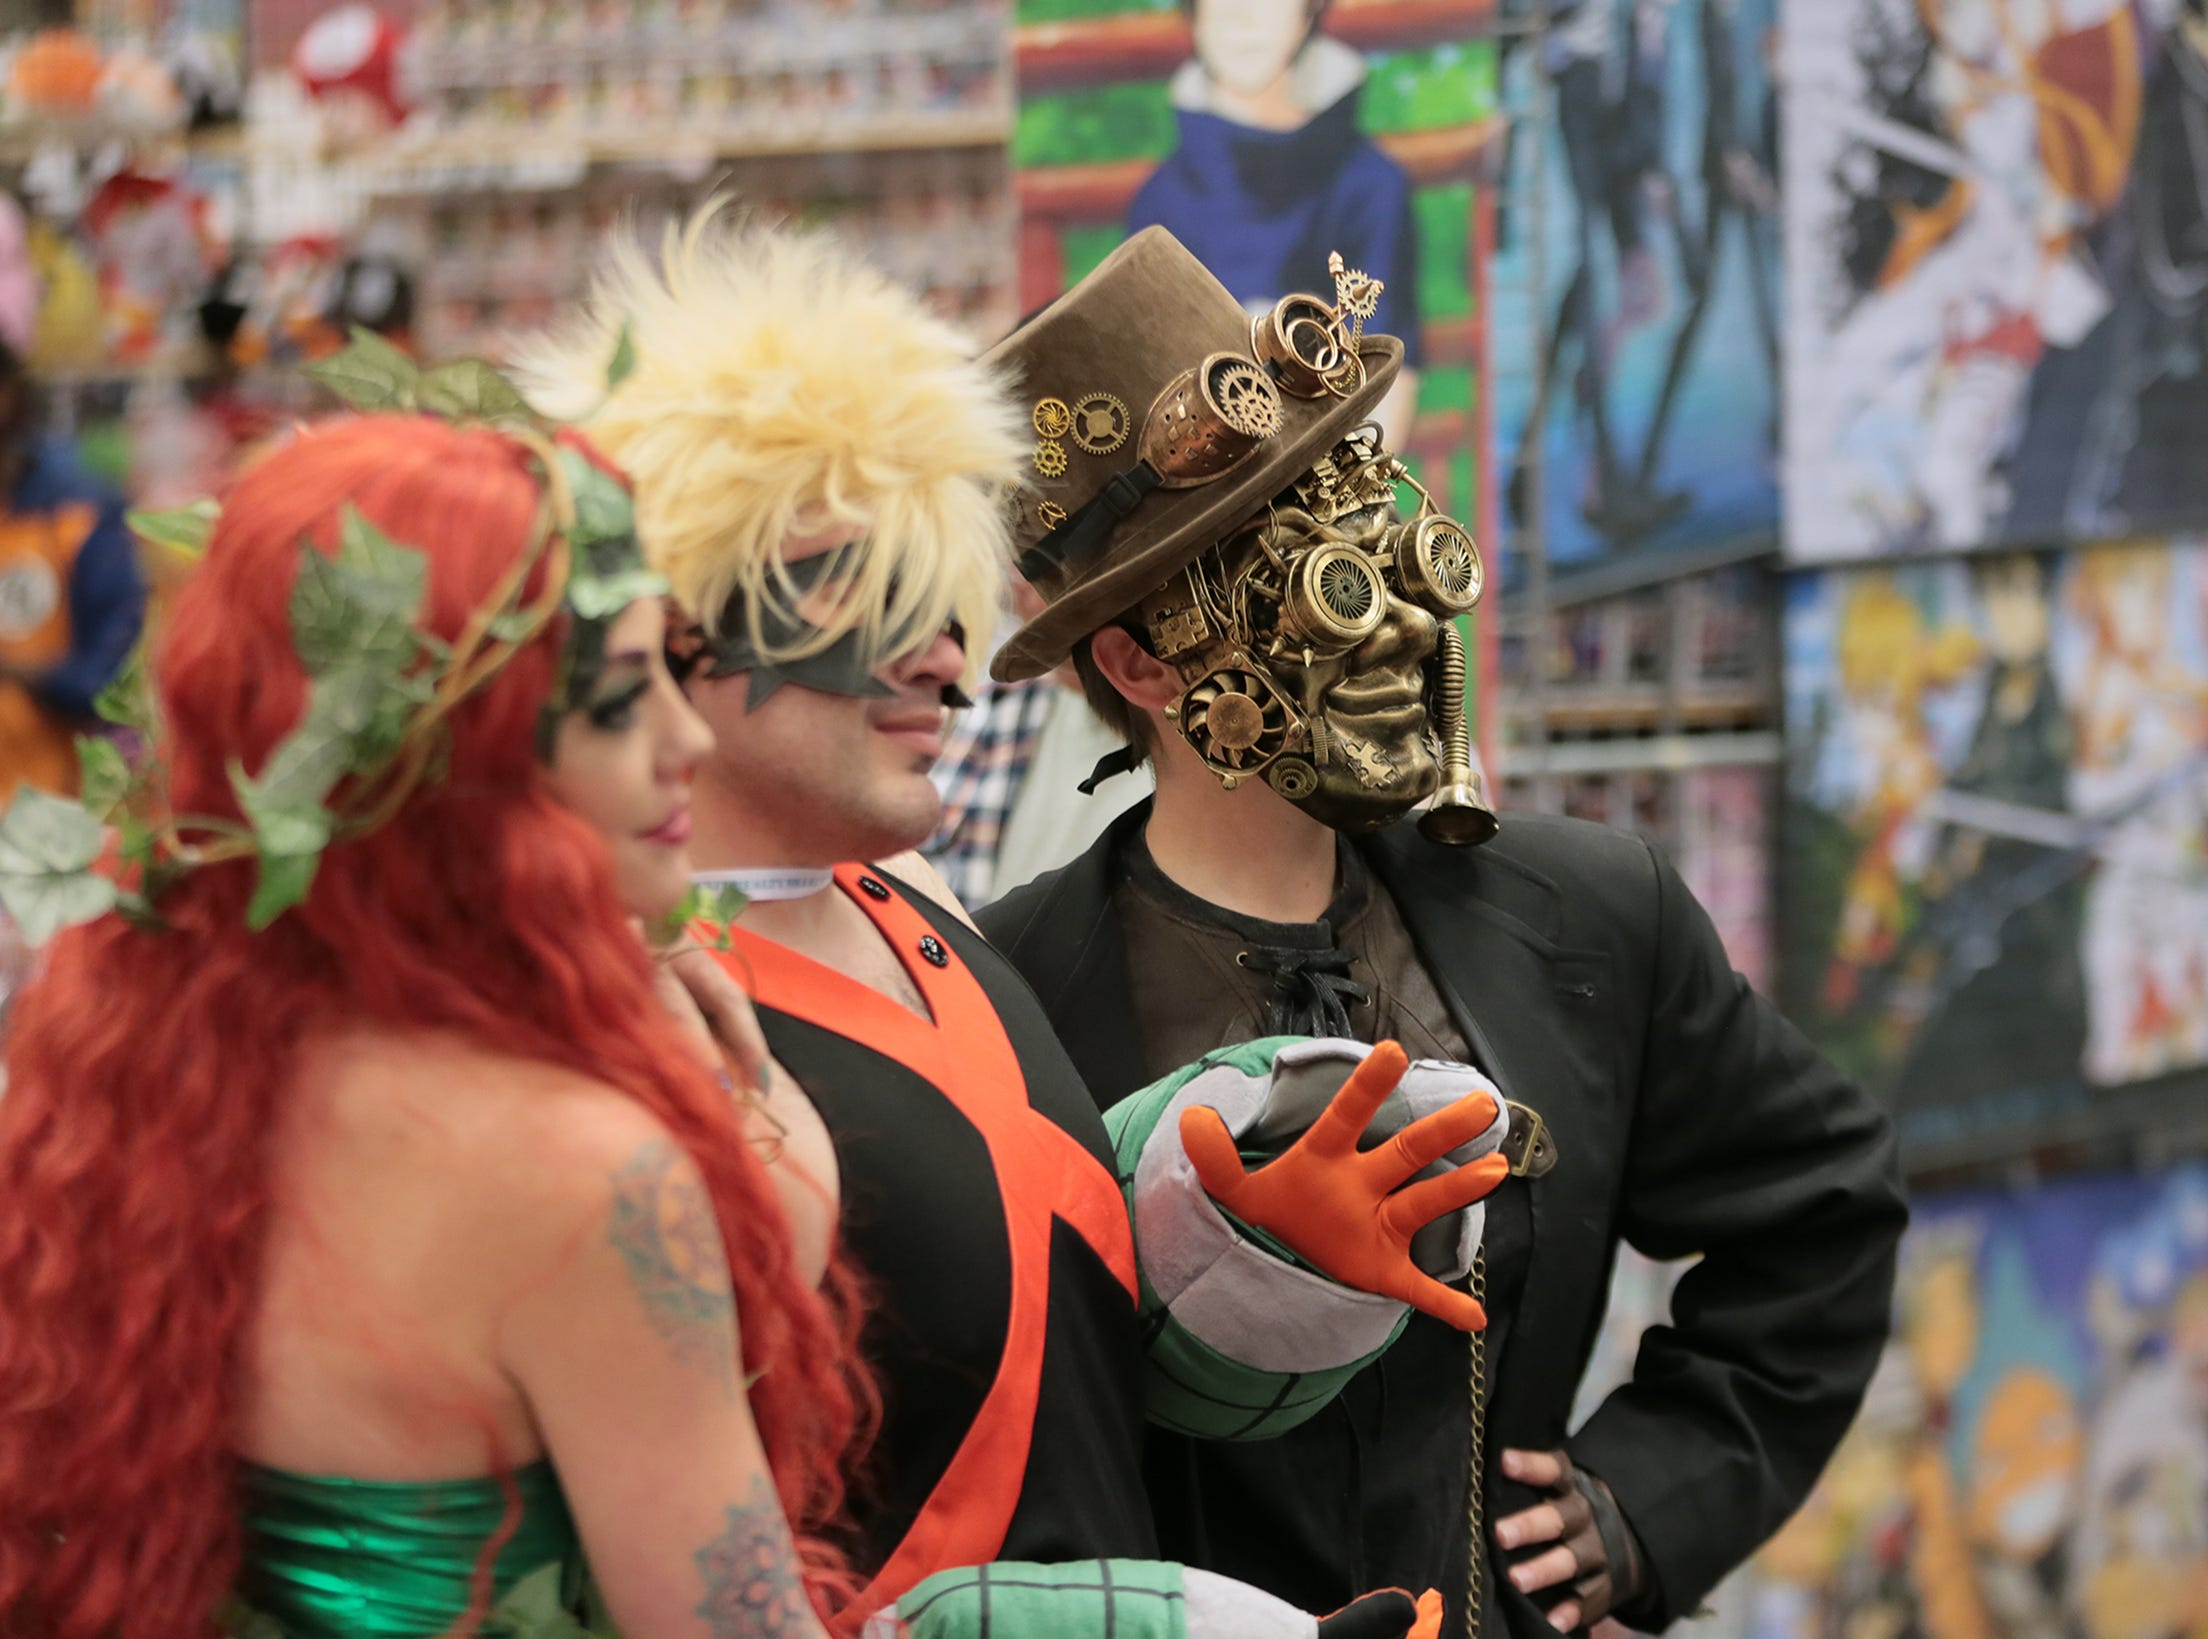 Cosplayers pose for a photo during El Paso Comic Con on Saturday, April 13, 2019, at the El Paso convention center.